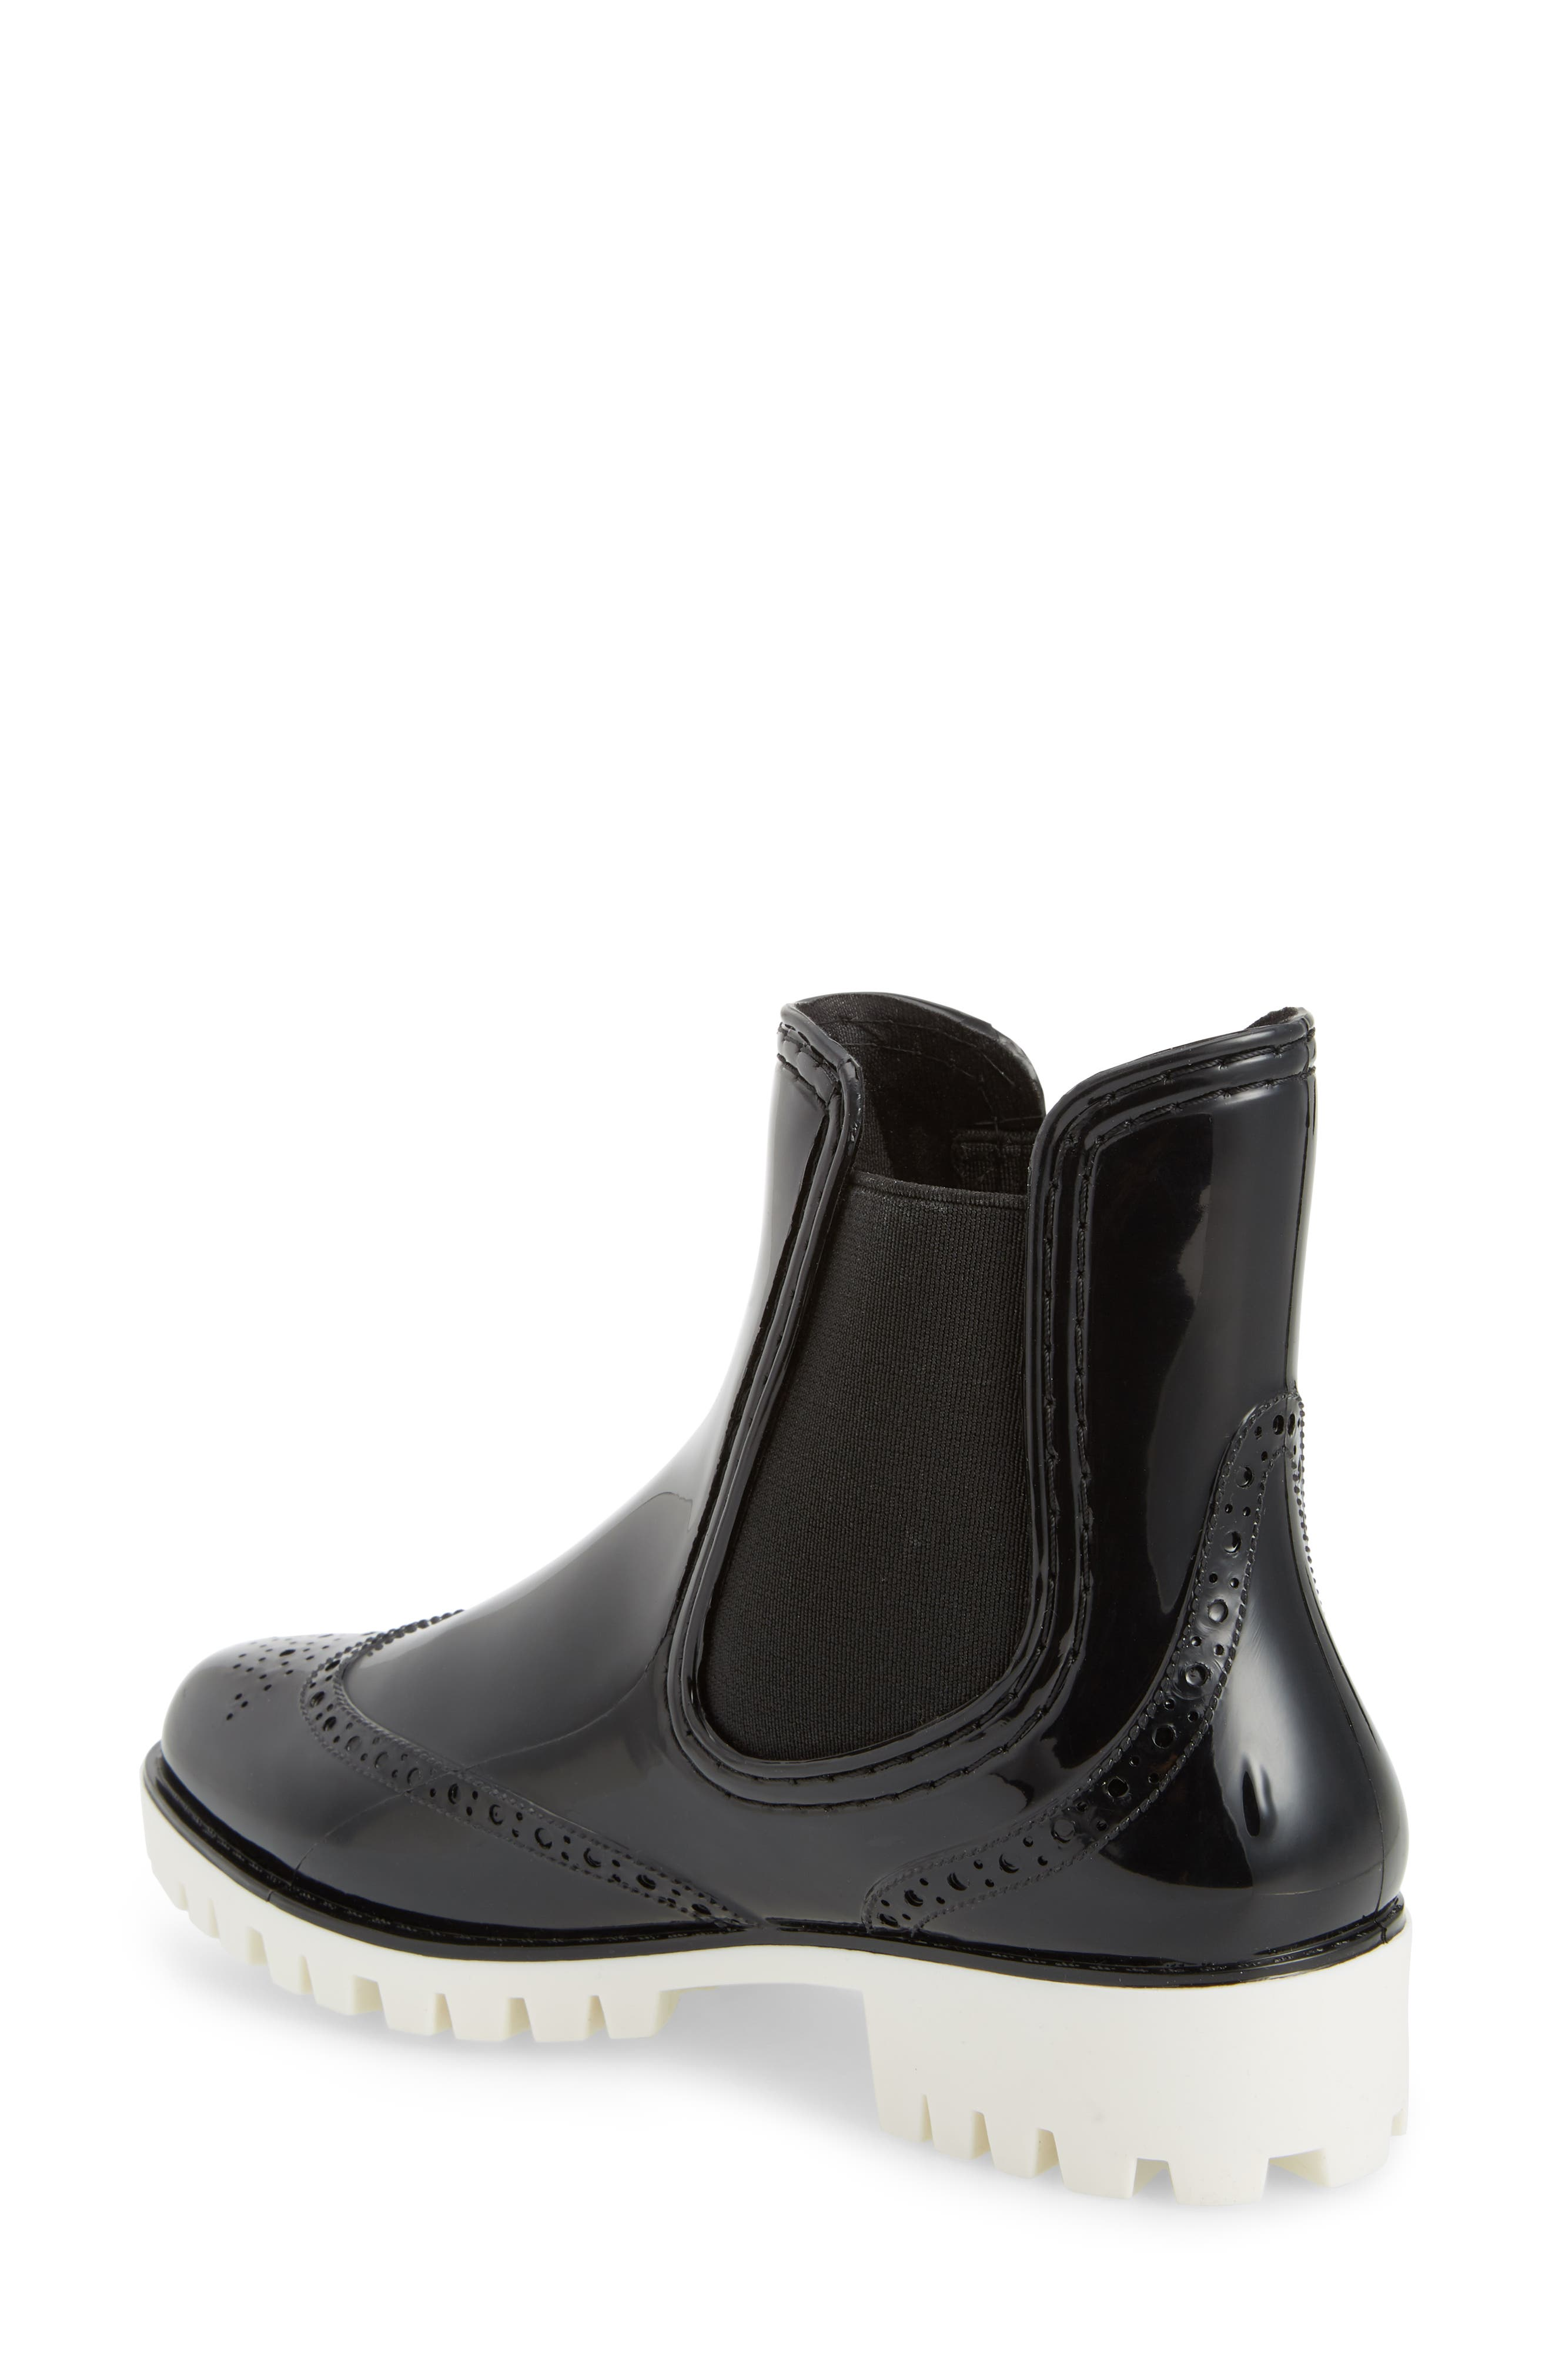 Leeds Brogue Rain Boot,                             Alternate thumbnail 2, color,                             BLACK